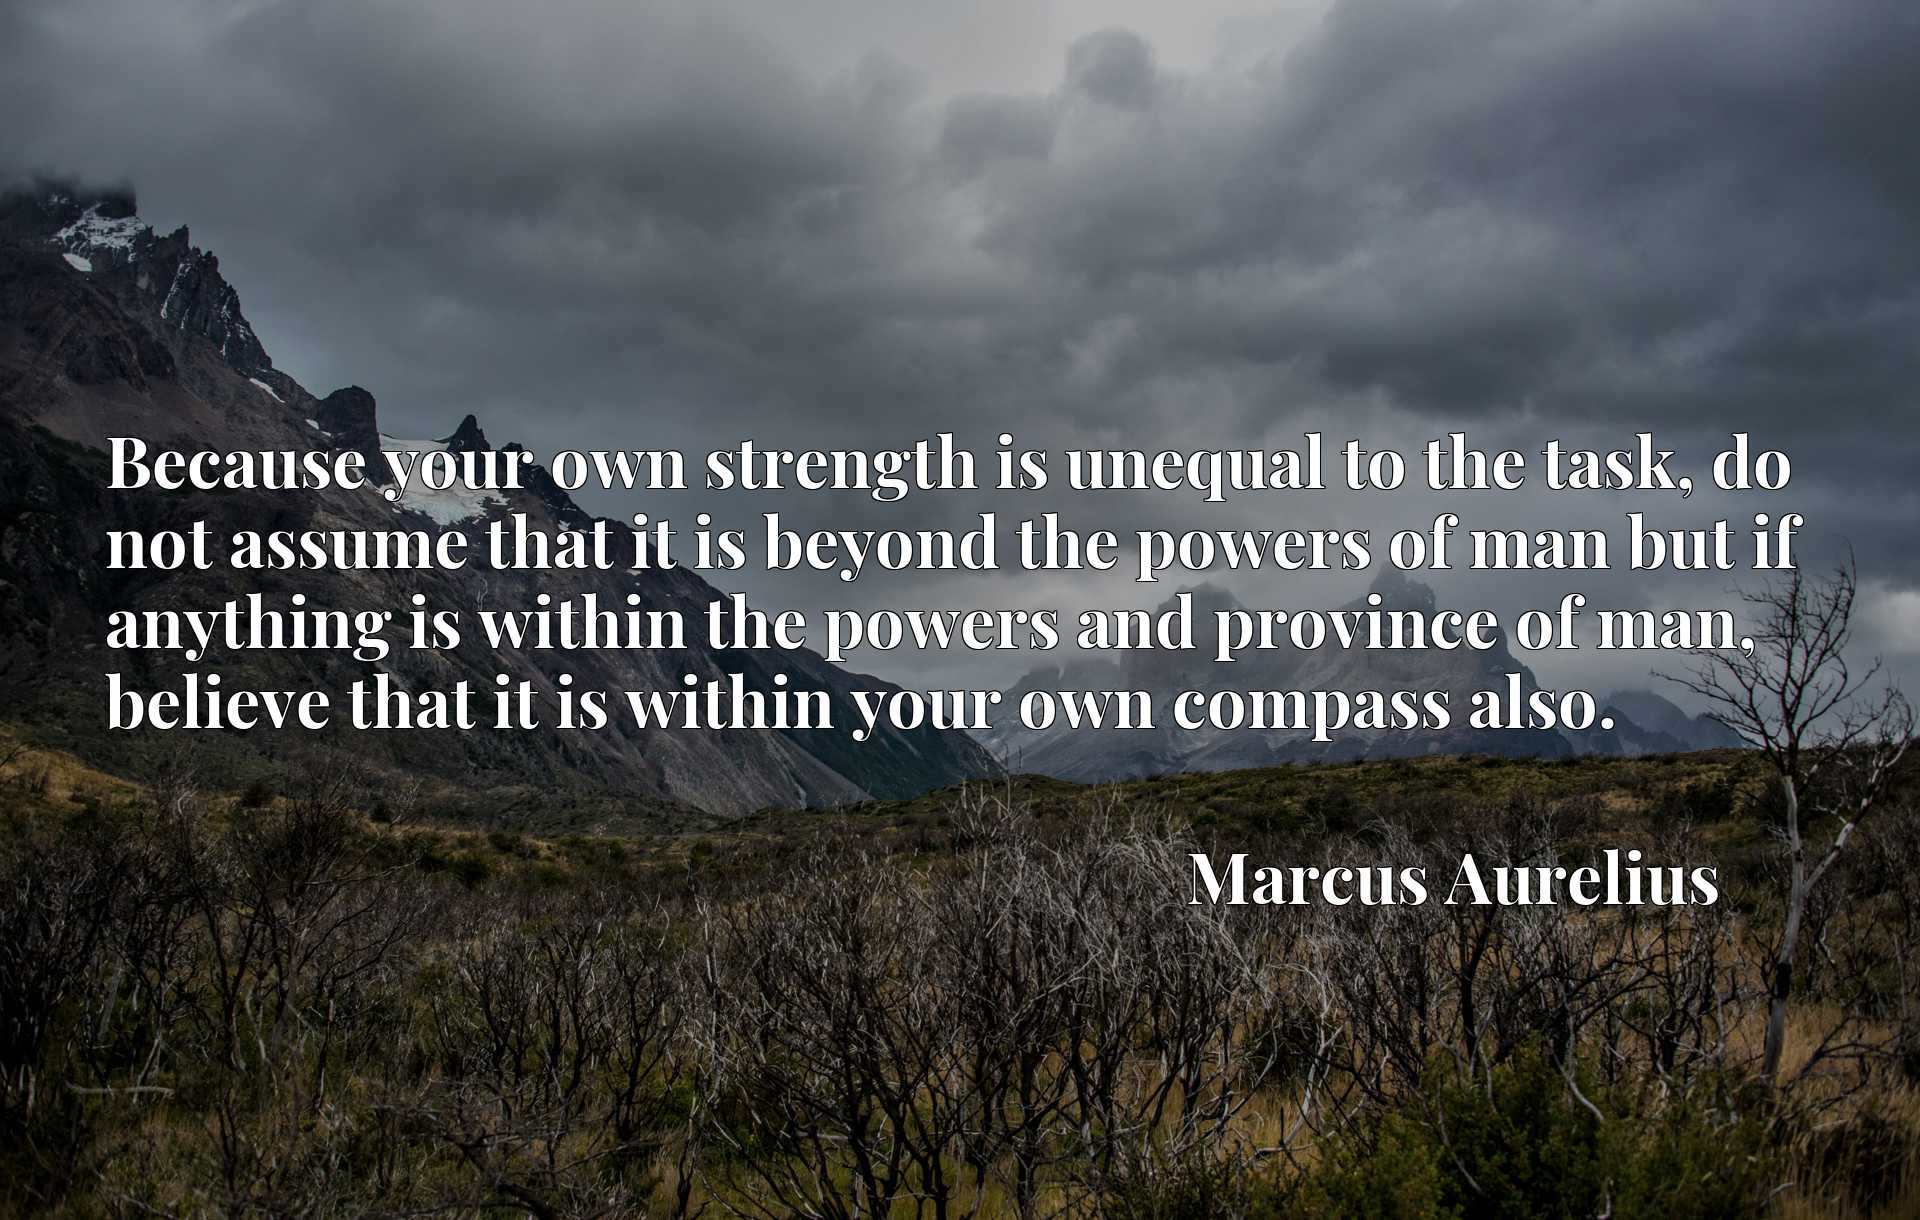 Quote Picture :Because your own strength is unequal to the task, do not assume that it is beyond the powers of man but if anything is within the powers and province of man, believe that it is within your own compass also.